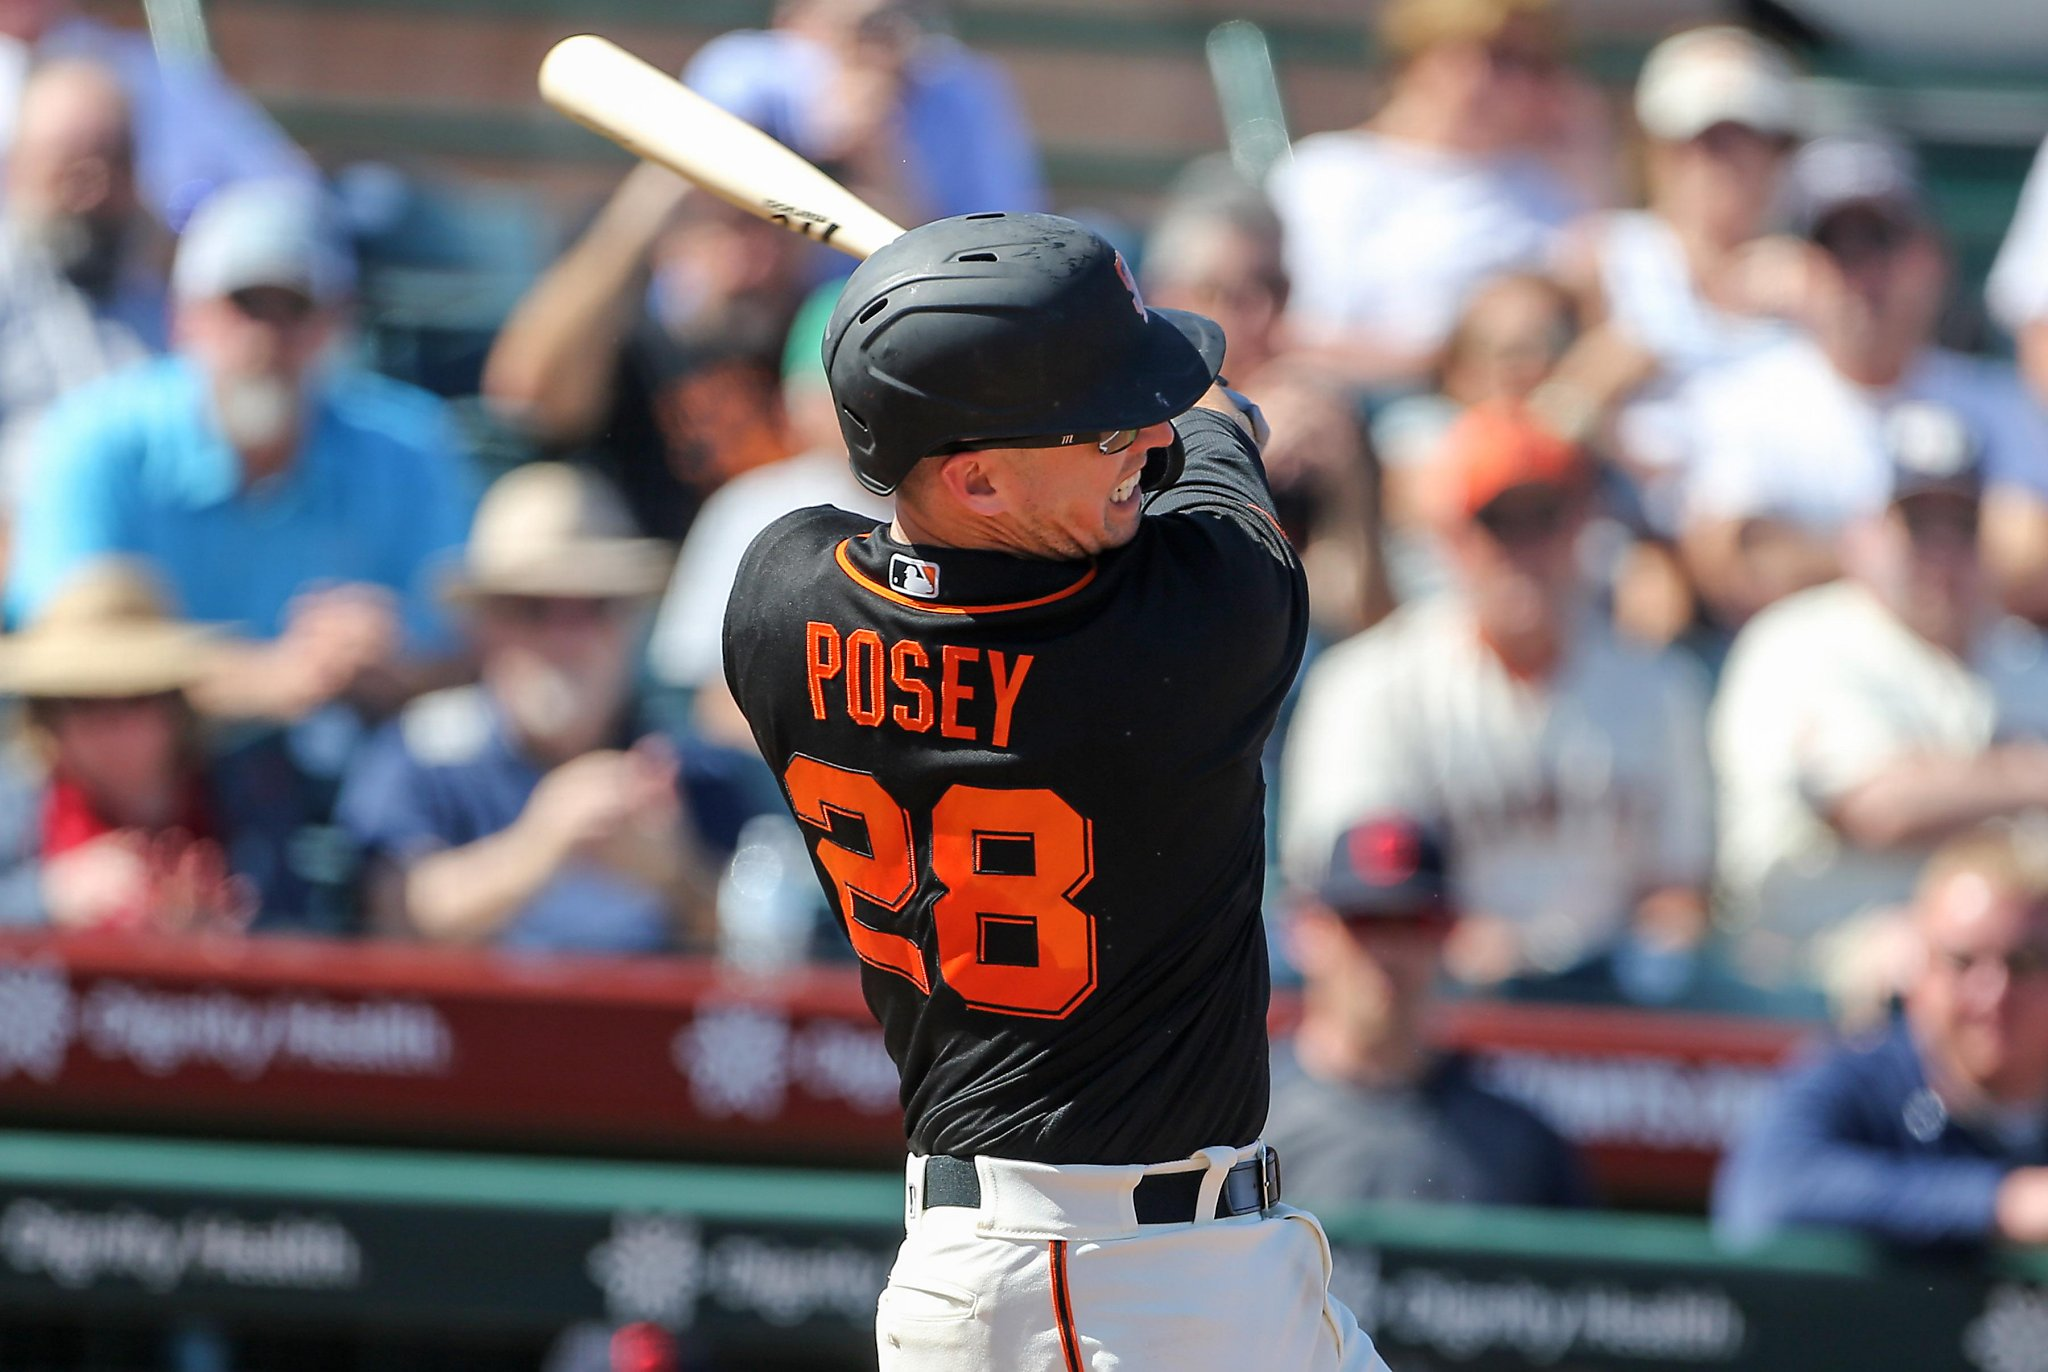 Giants' Buster Posey may opt out of 2020 MLB season